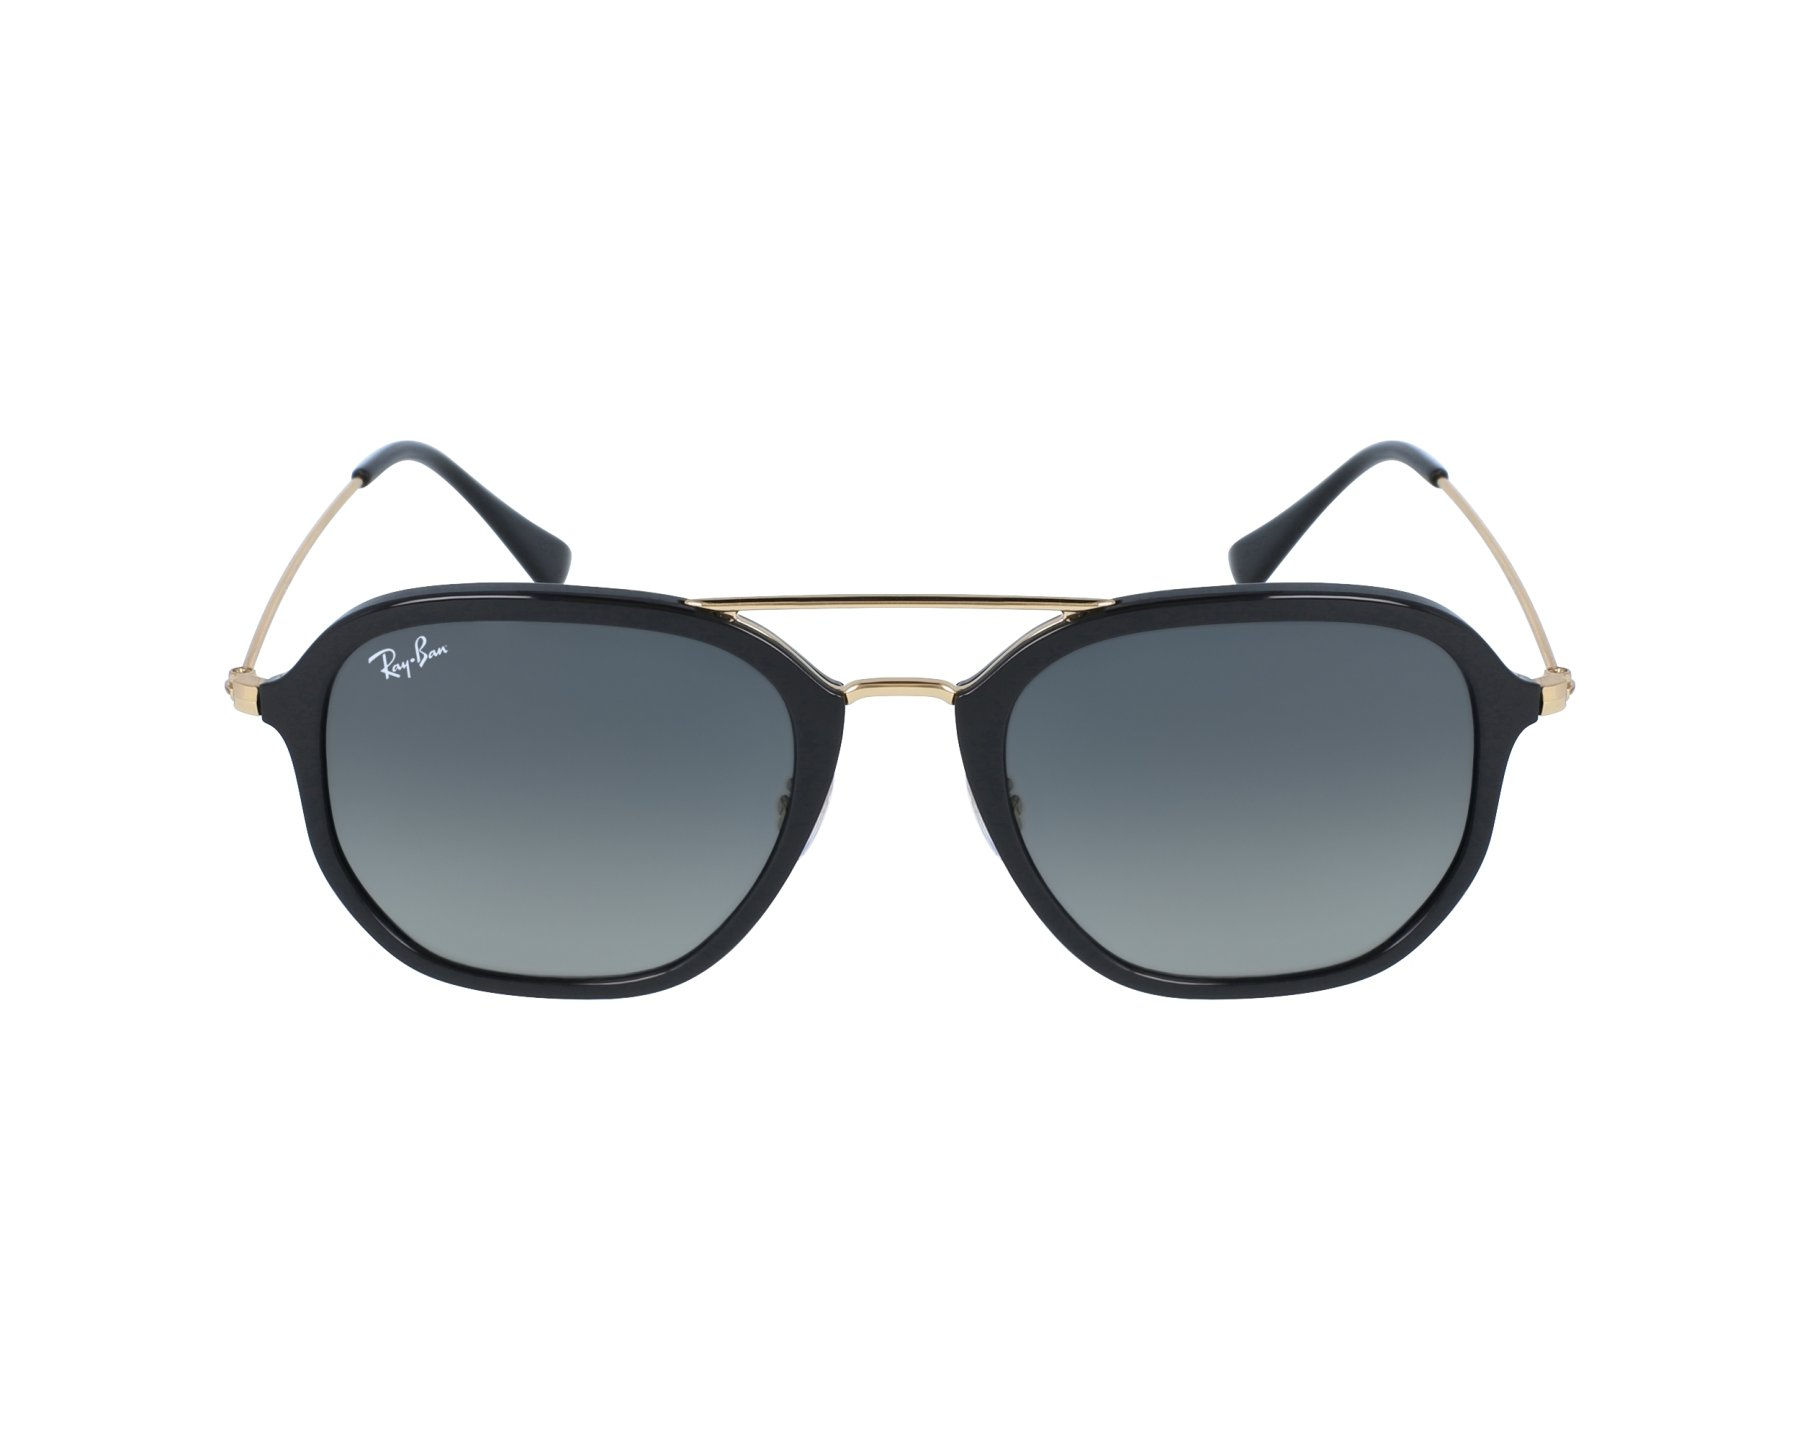 0141e2ba17 Sunglasses Ray-Ban RB-4273 601 71 52-21 Black Gold profile